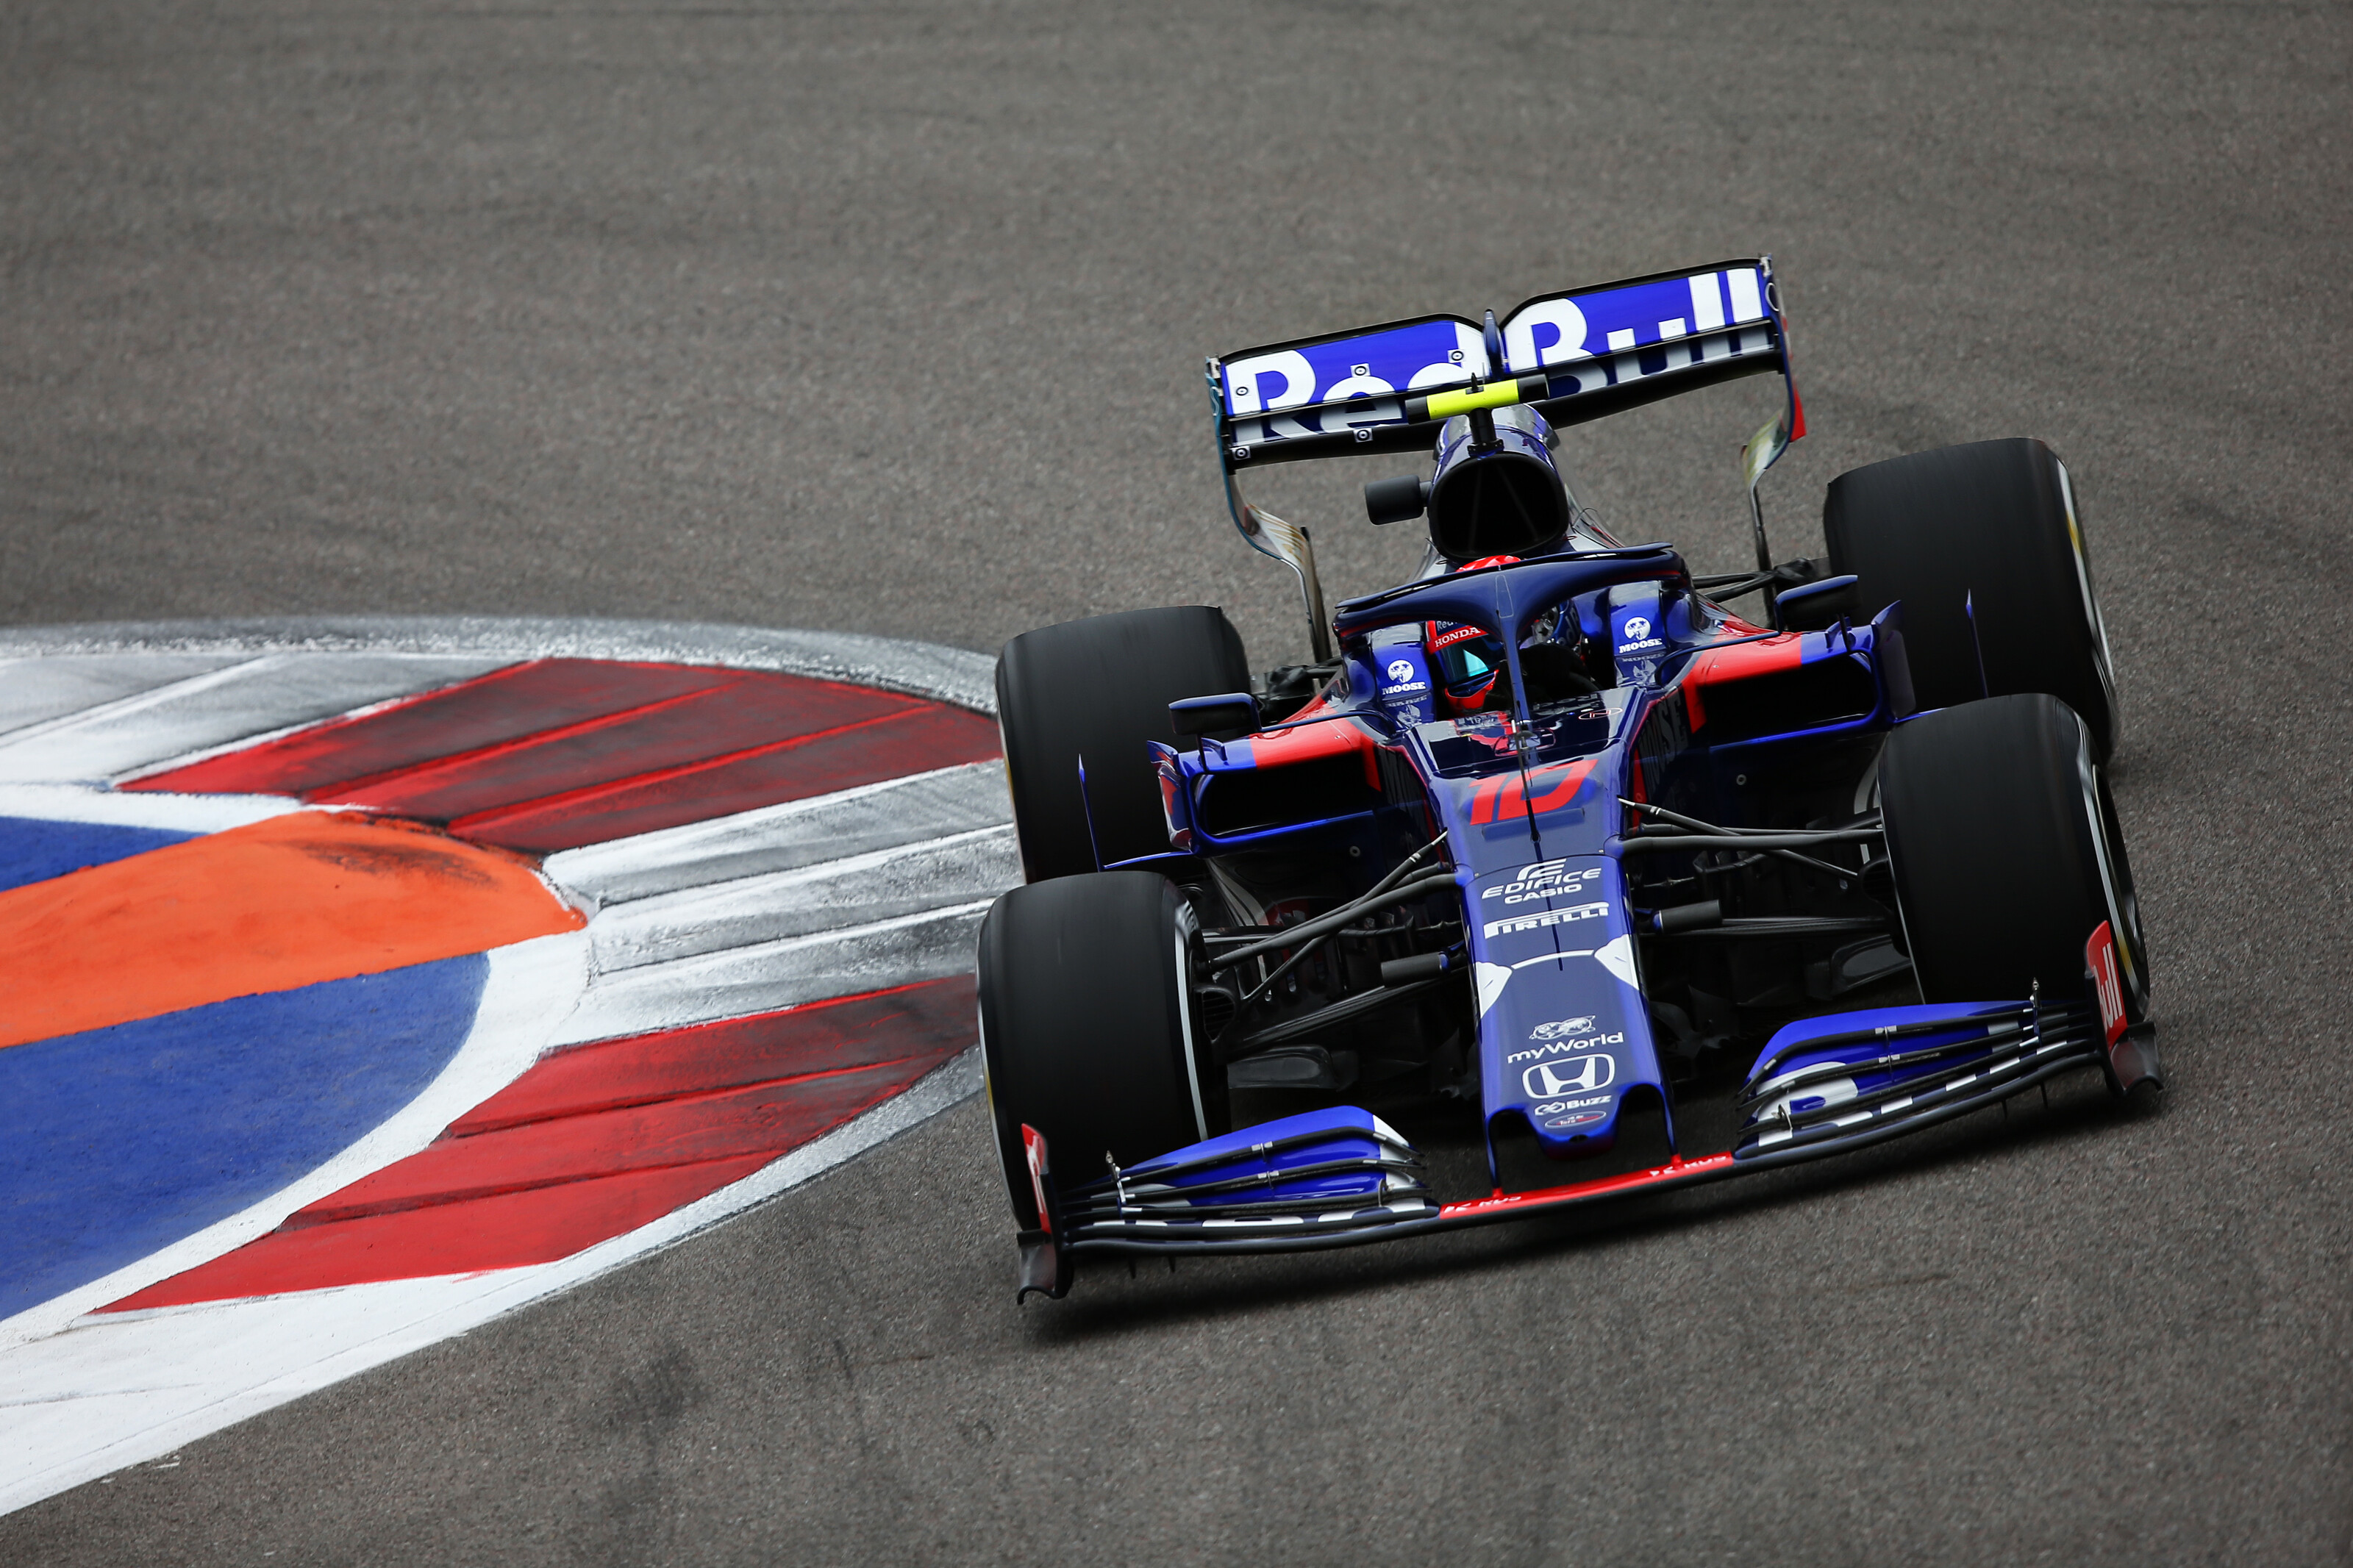 Toro Rosso to be renamed AlphaTauri for 2020